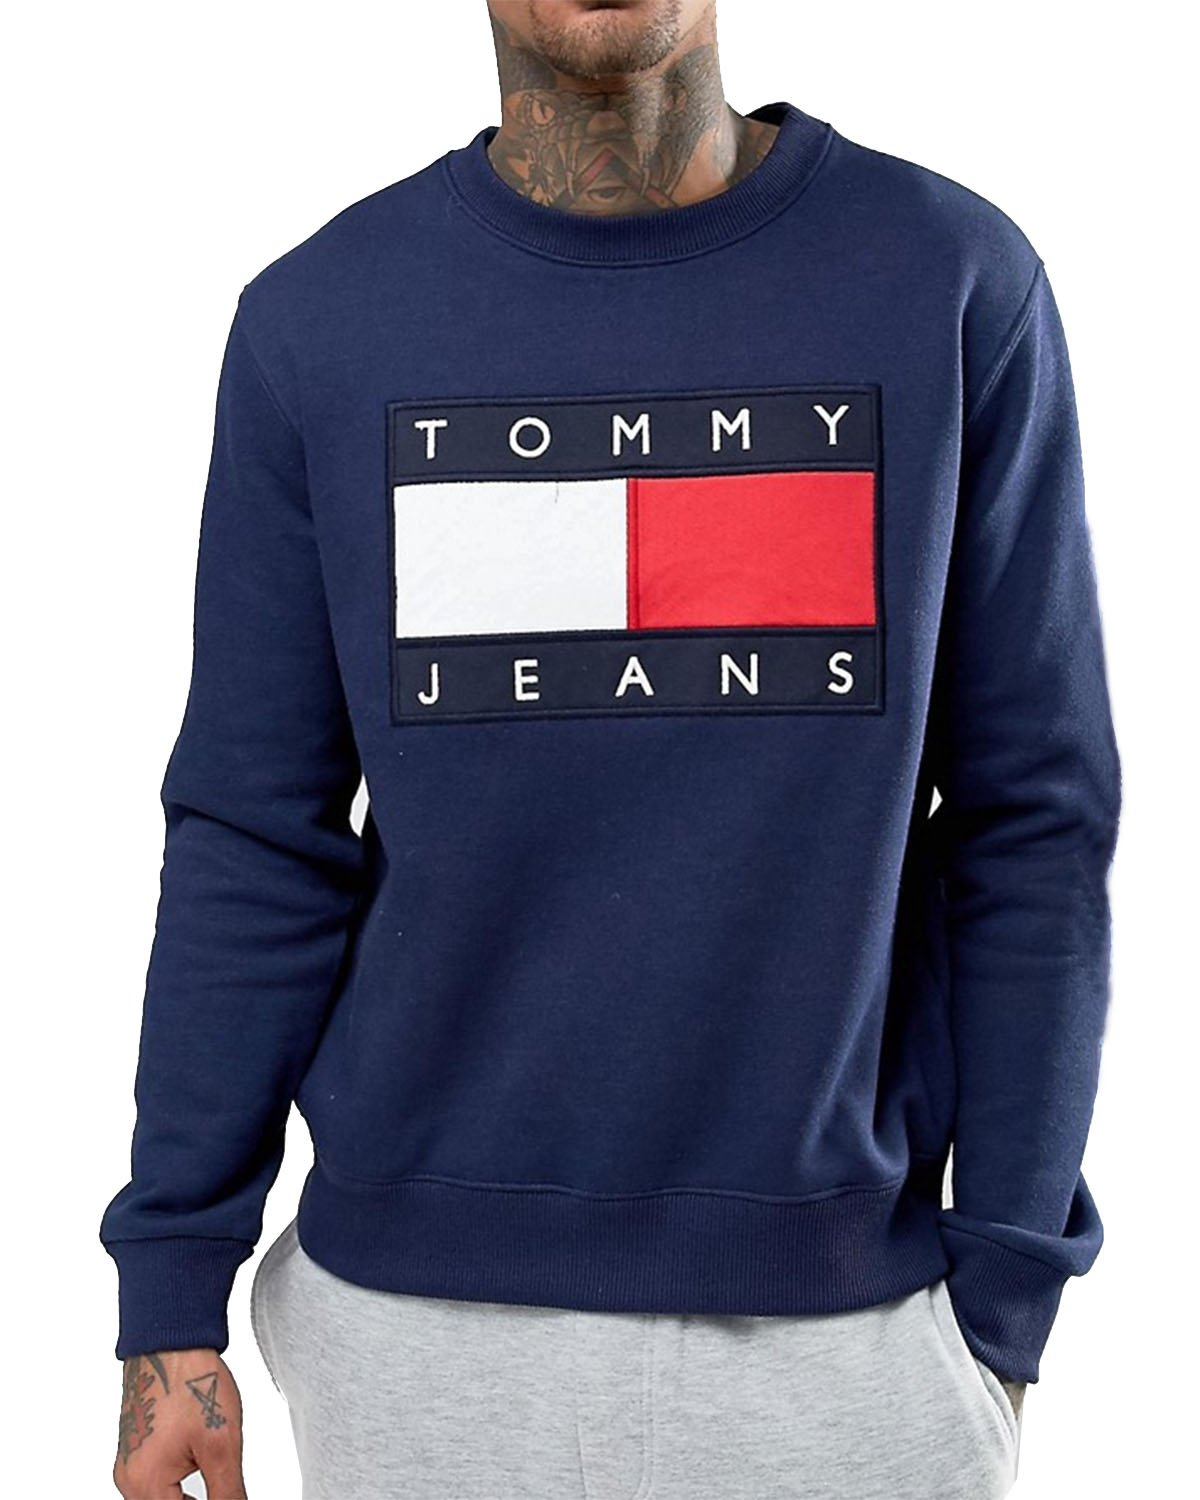 TOMMY HILFIGER Men's Sweatshirt - Blue (Navy), XXL by Tommy Hilfiger